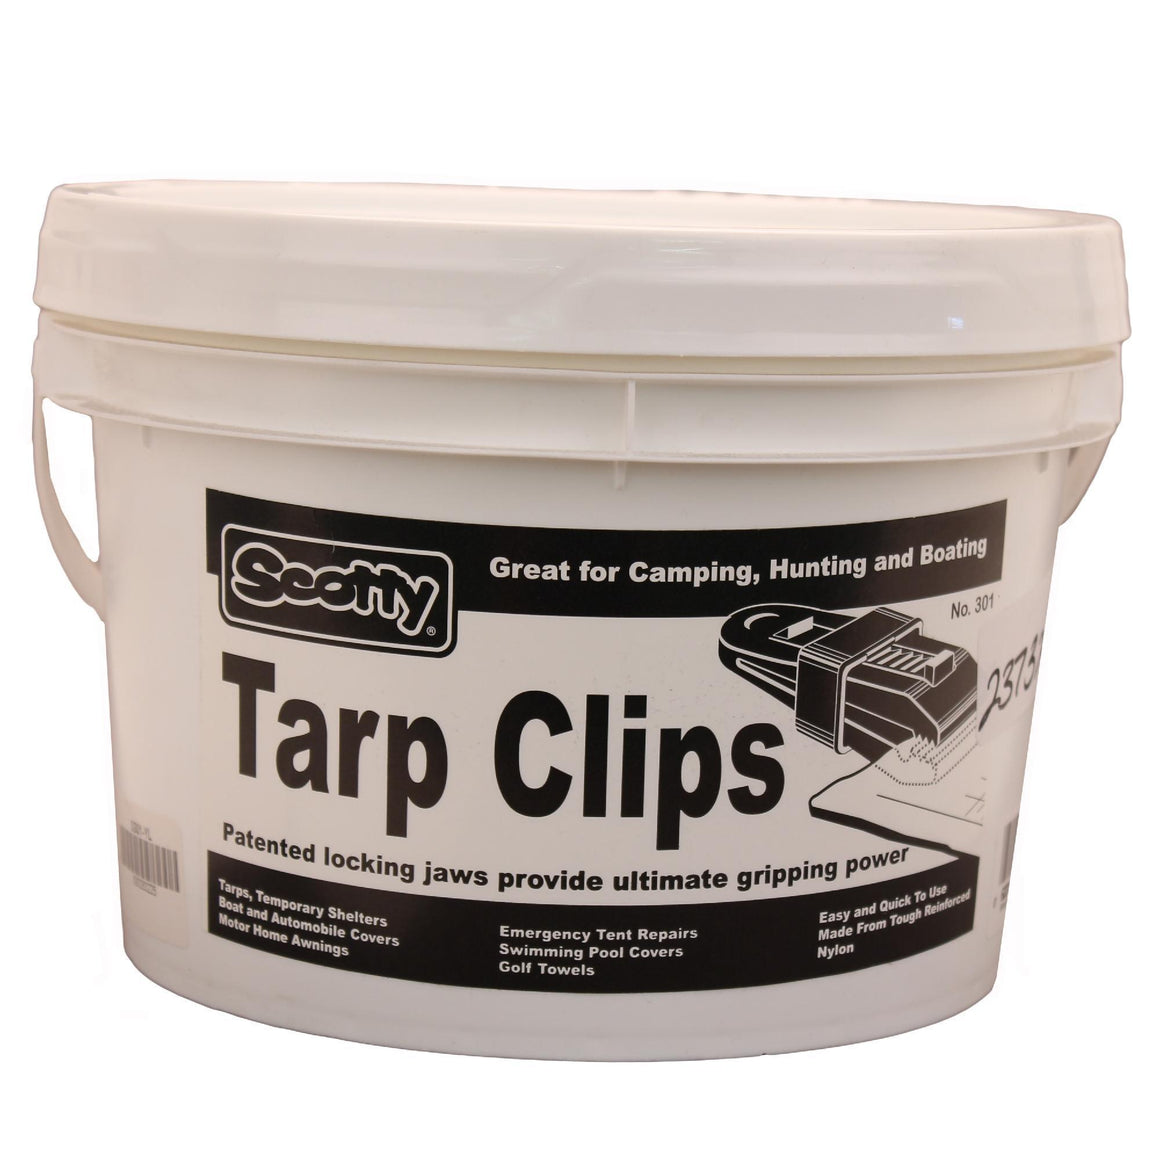 60 Tarp Clips - Yellow, Display Bucket